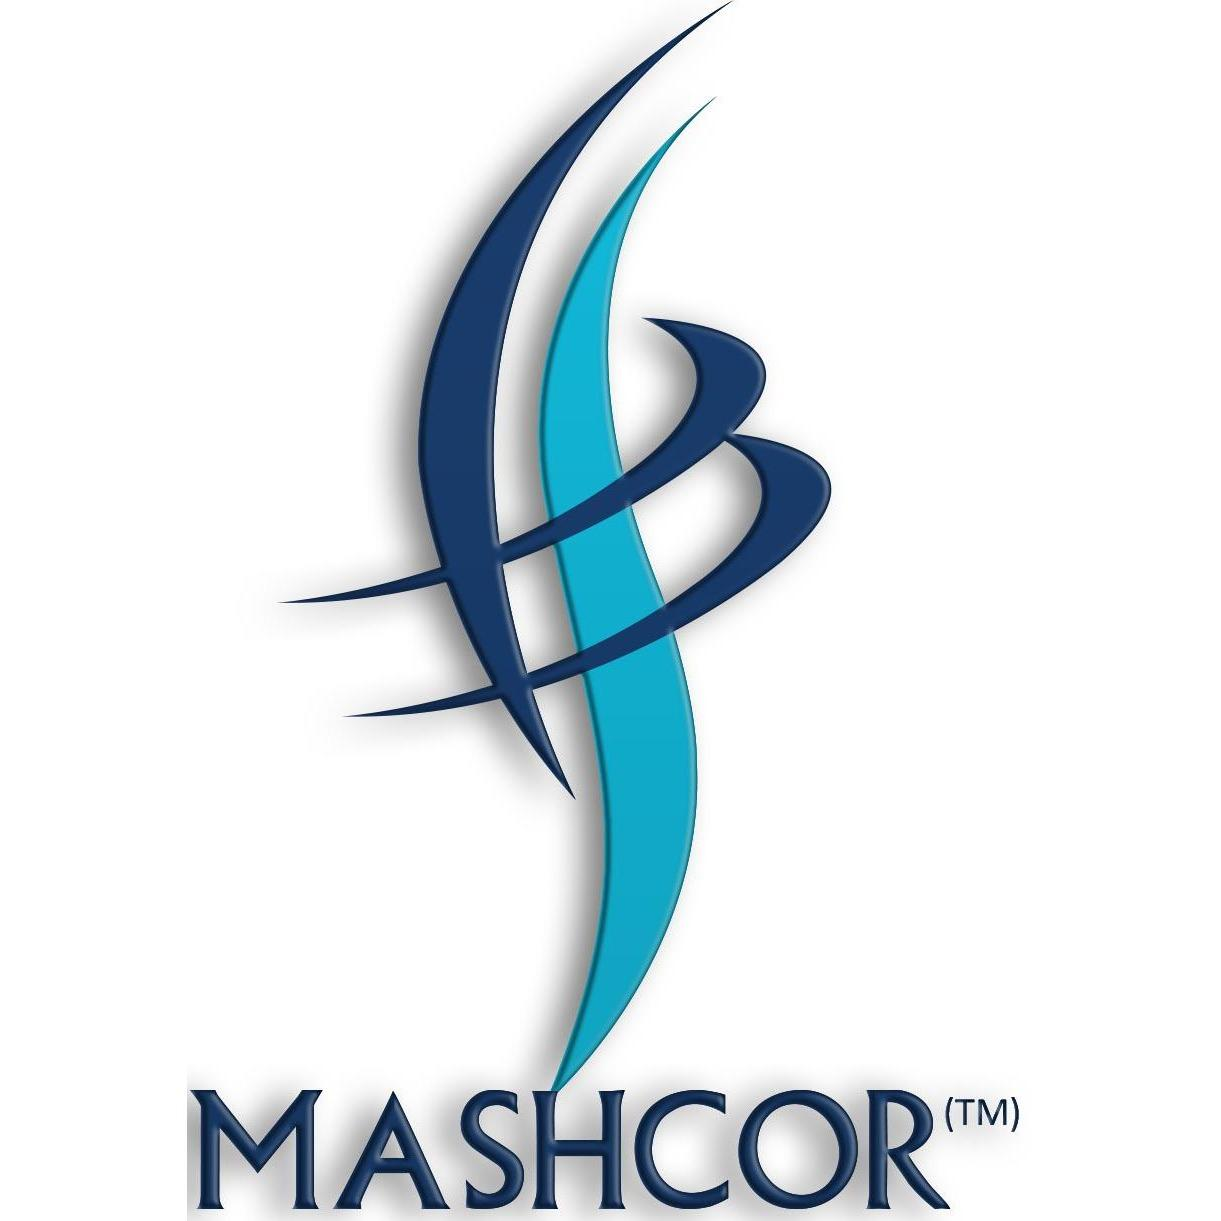 Even if you're past y. Mashcor Digital Marketing Agency - Cape Town